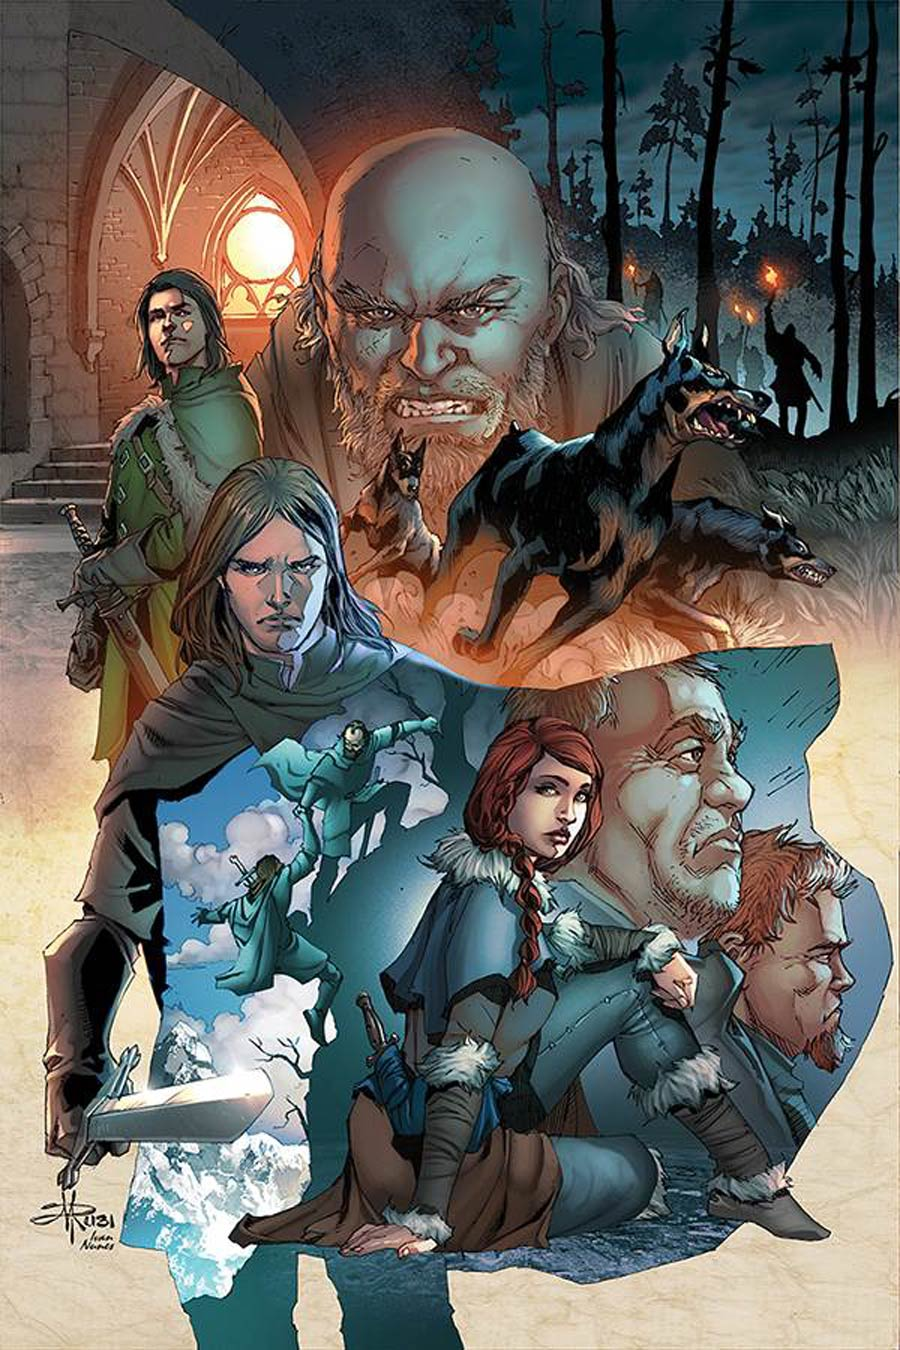 Game Of Thrones Clash Of Kings Vol 2 #8 Cover C Incentive Mel Rubi Virgin Cover